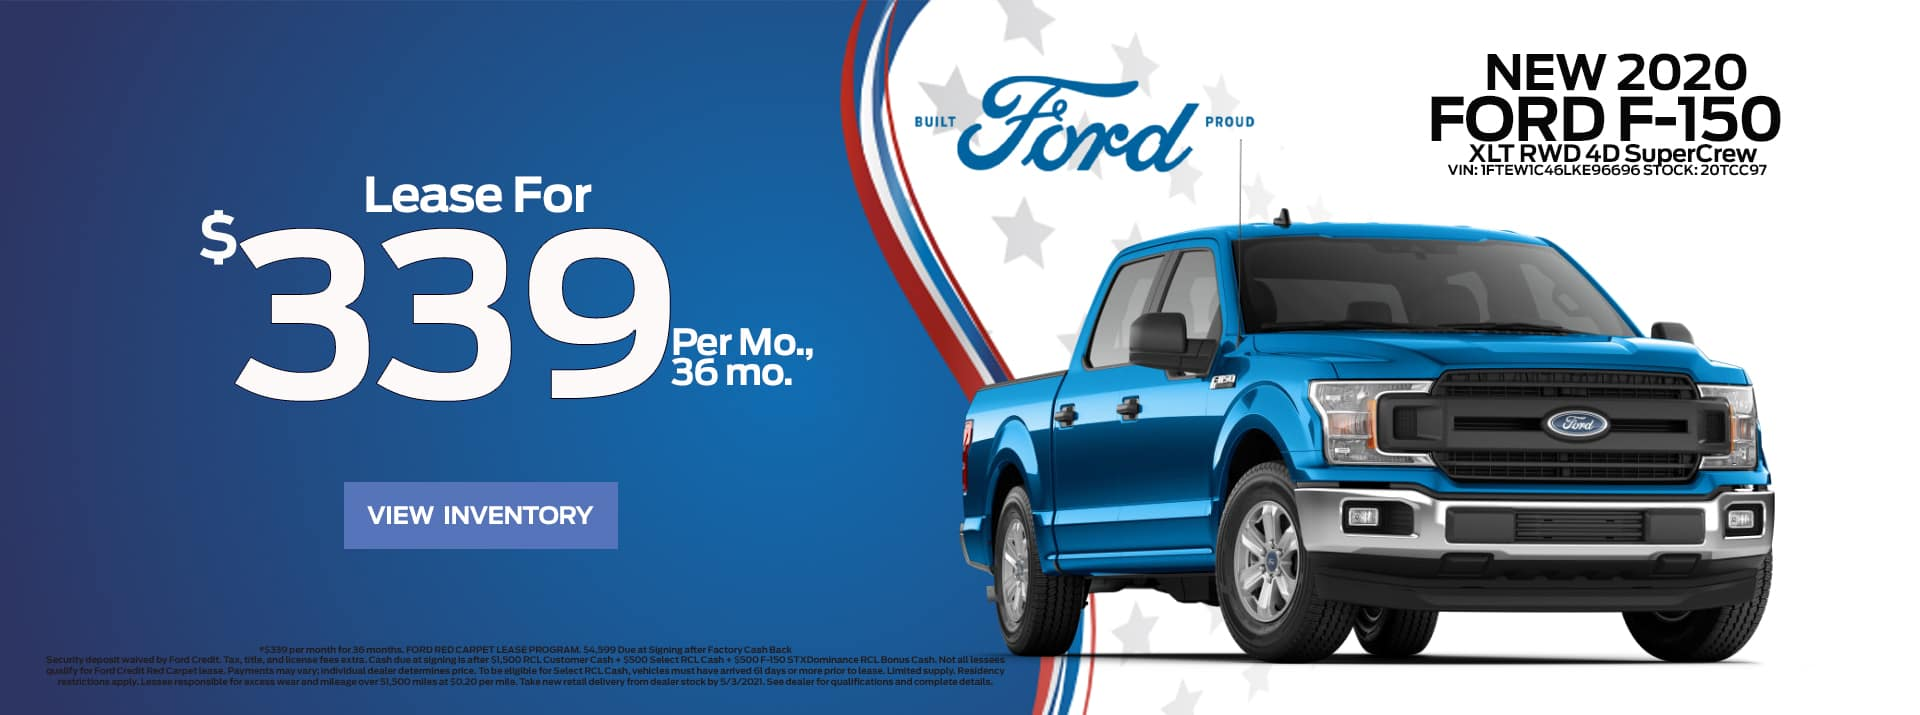 April_2021 Ford-150 Lease FF